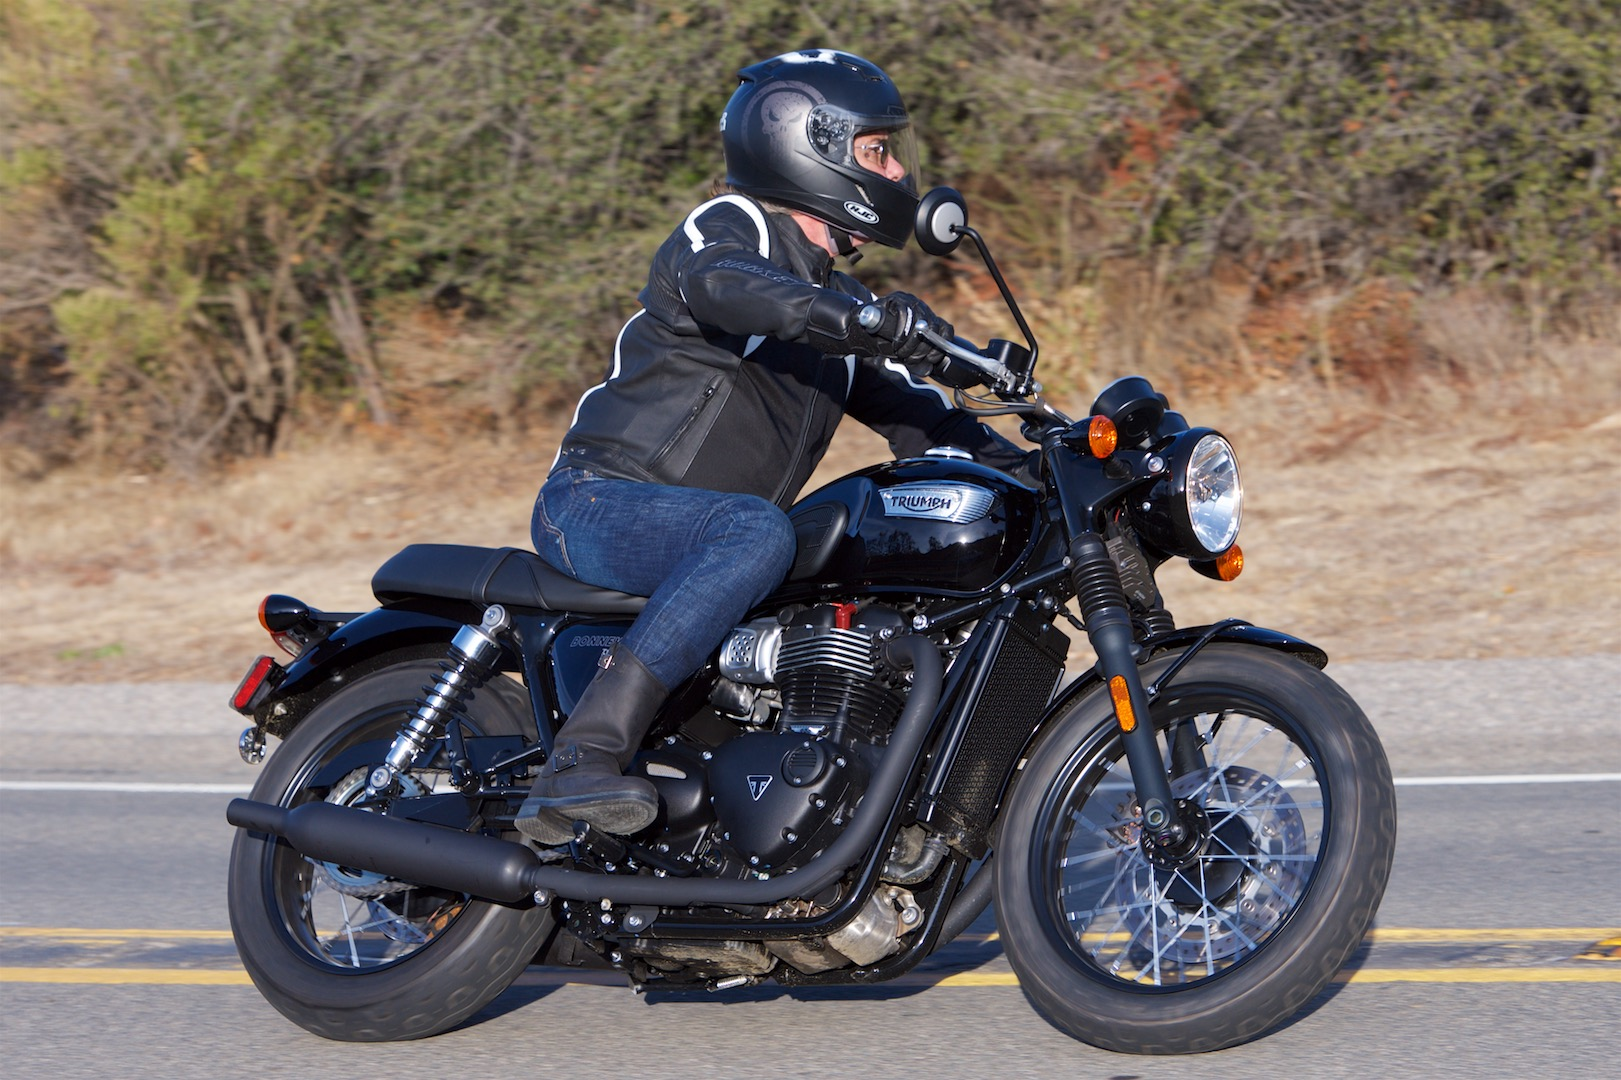 2017 Triumph Bonneville T100 Black Review